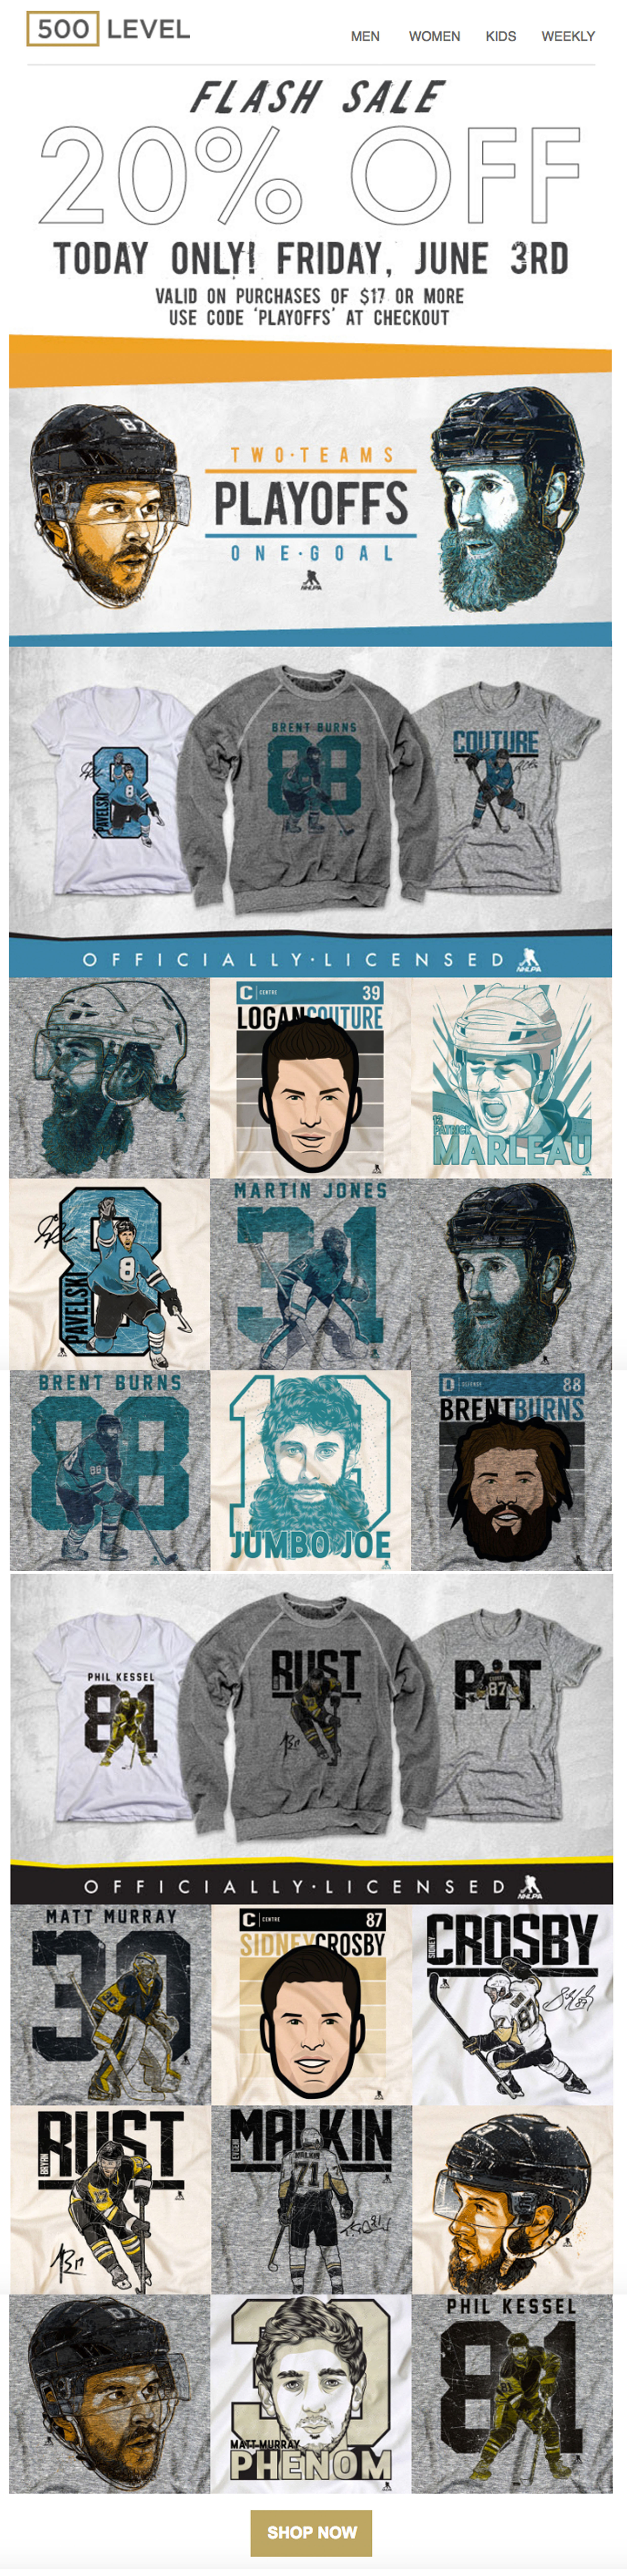 Stanley Cup gears from 500level on Behance cf8fbc914